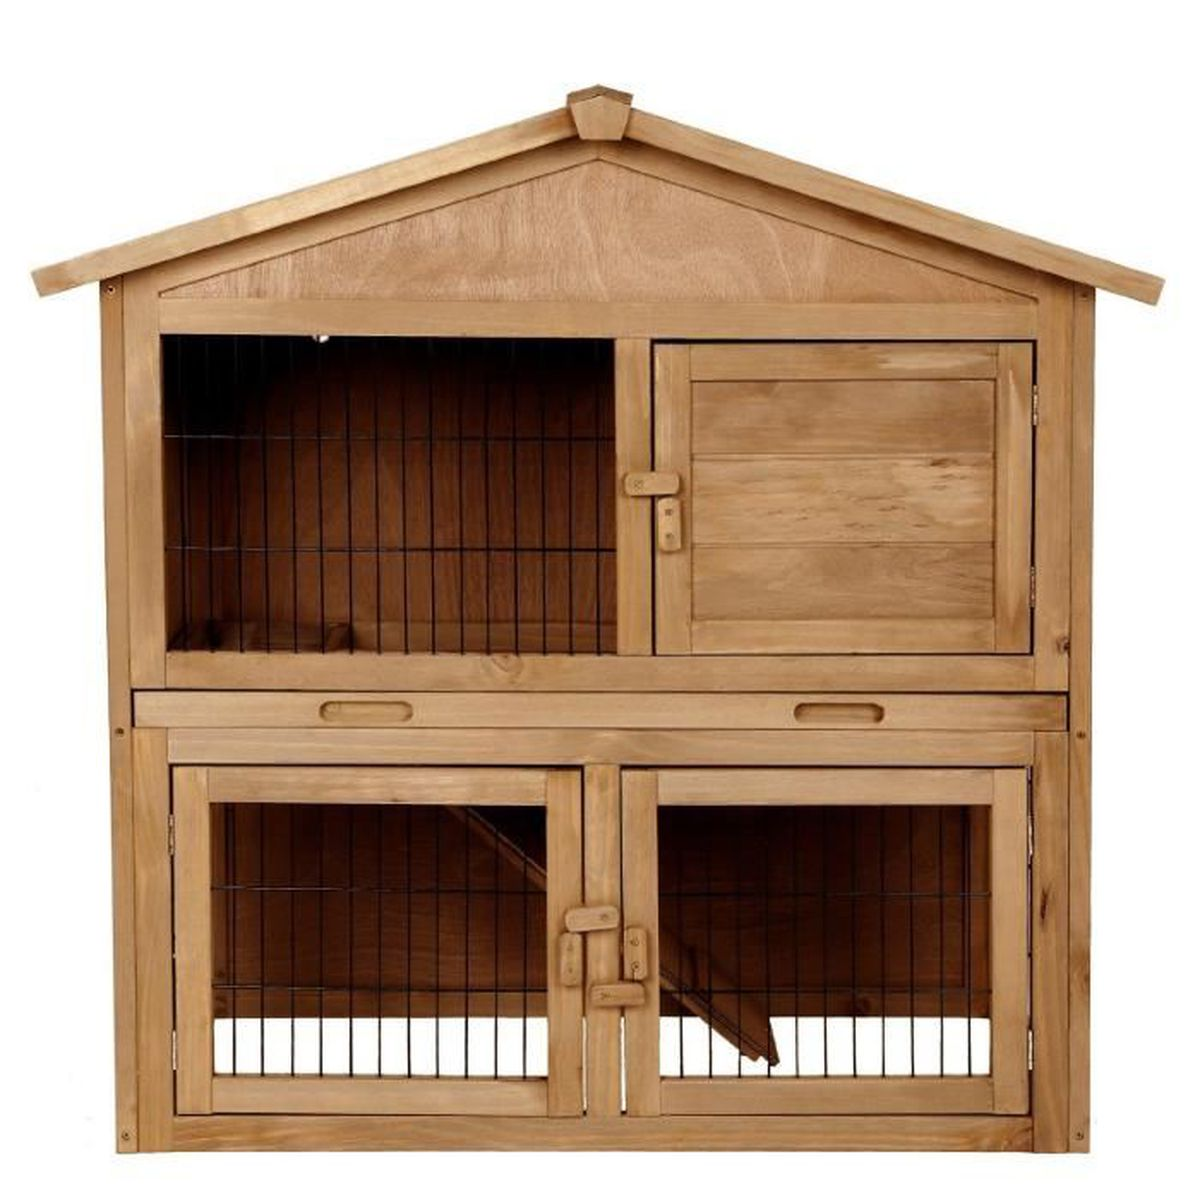 xxl bois clapier lapins cage lapin cabane cage plateau coulissant deux tages achat vente. Black Bedroom Furniture Sets. Home Design Ideas